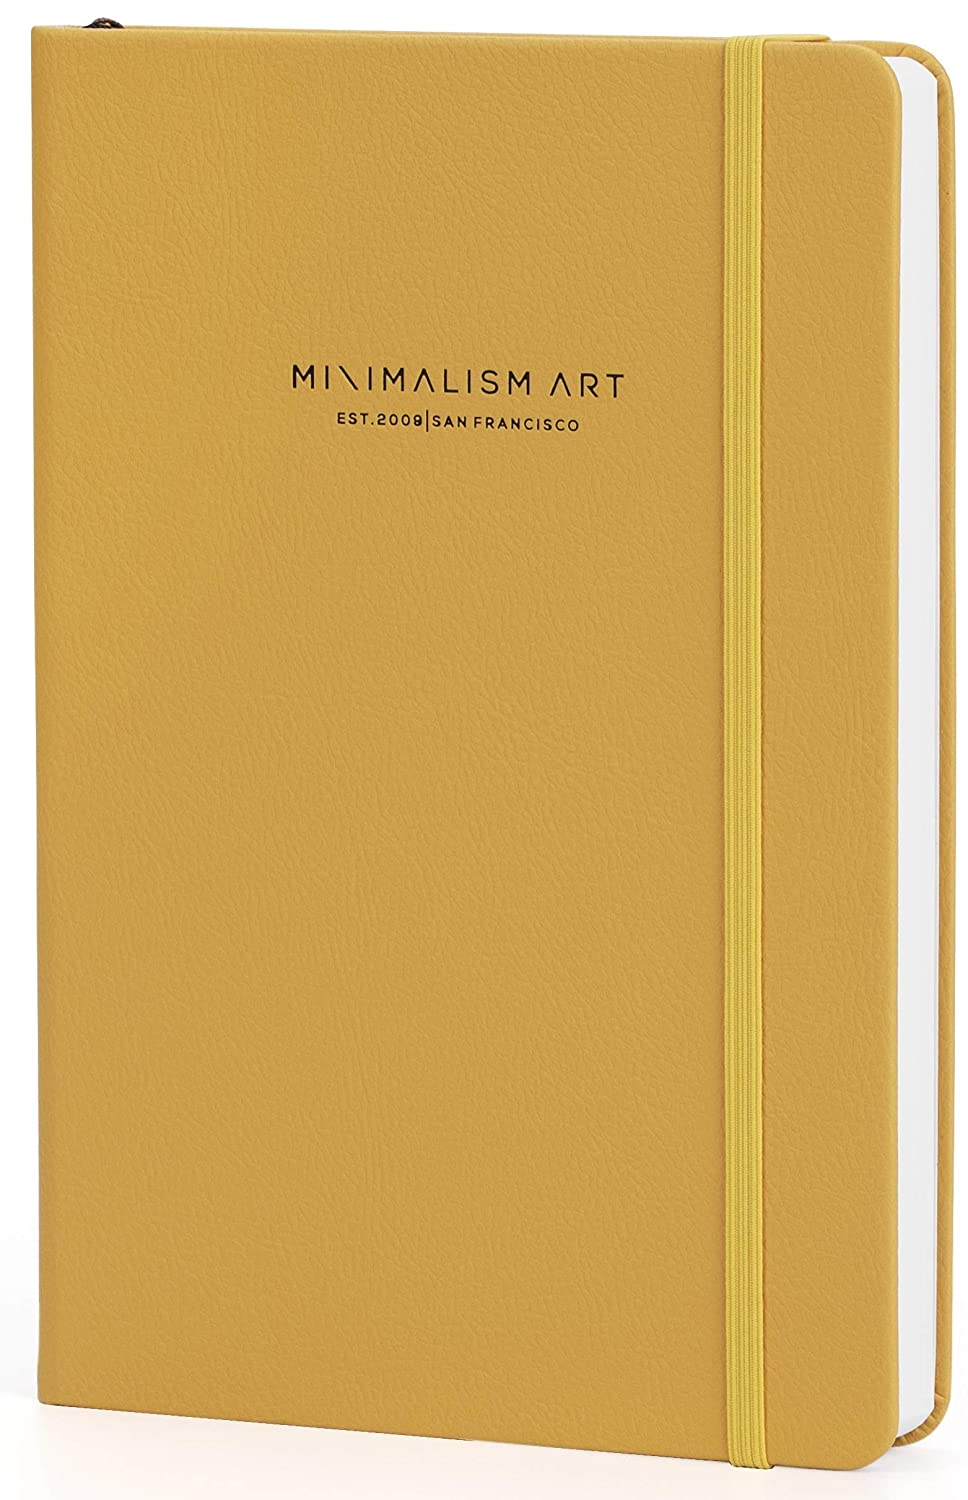 Hard Cover-Golden Yellow-234NumberedPages-GussetedPocket-Ribbon Bookmark-Ink-ProofPaper120gsm Premium Edition Notebook Journal Minimalism Art San Francisco A5 5.8x8.3-4 Rulings in 1